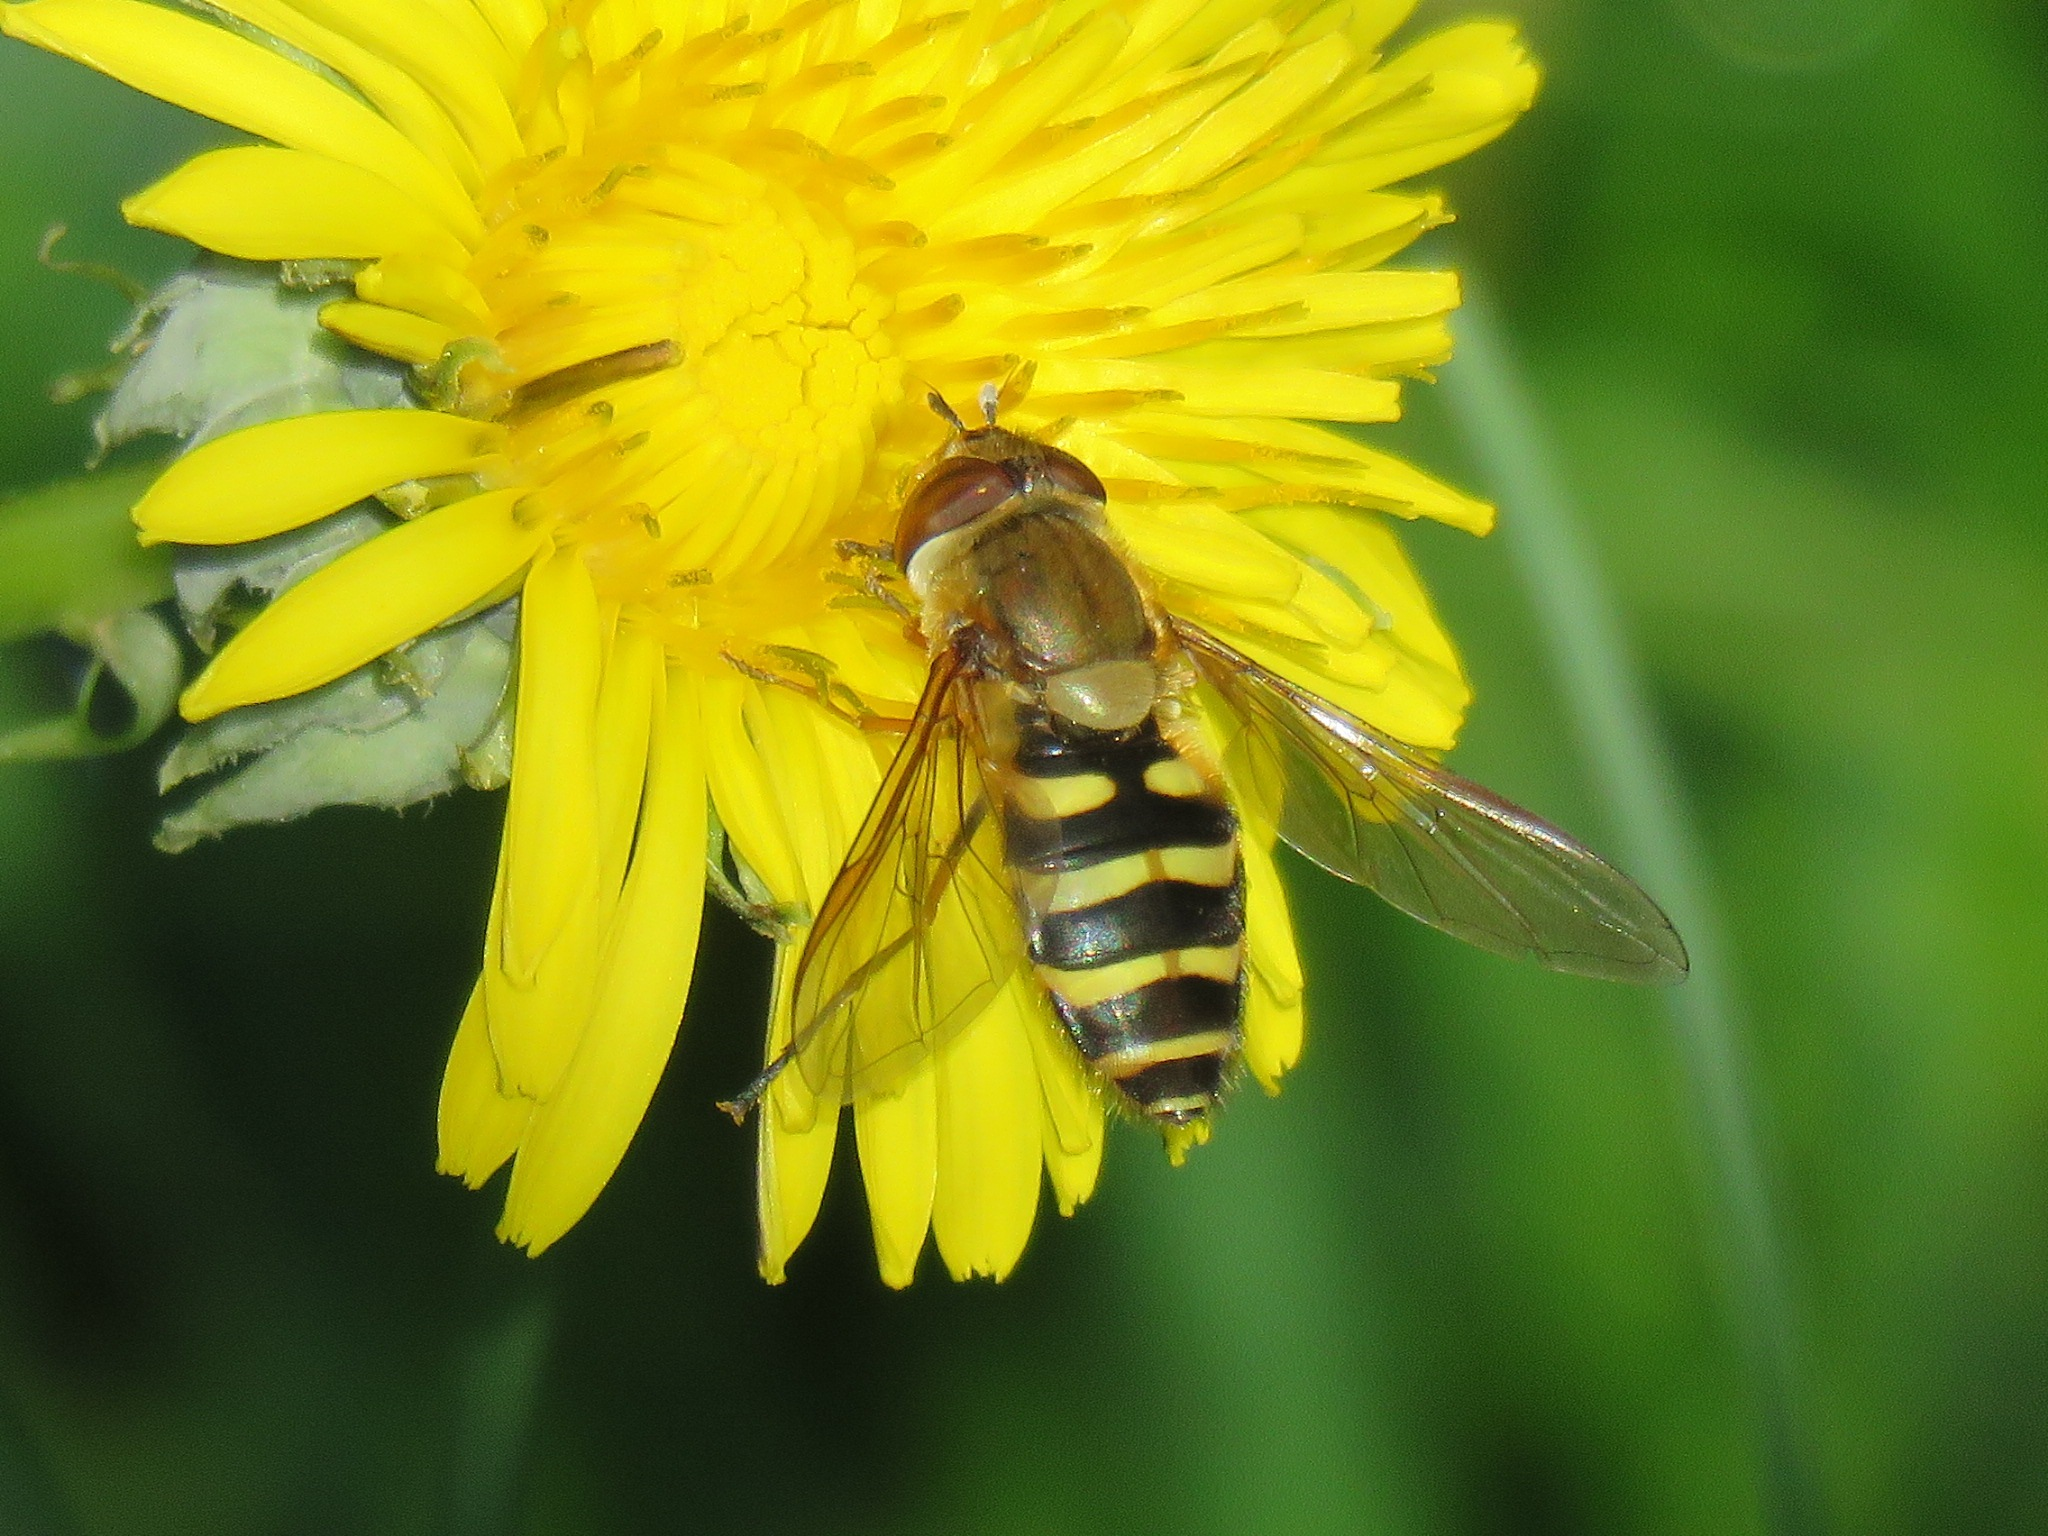 #Wild flower and hoverfly by marit